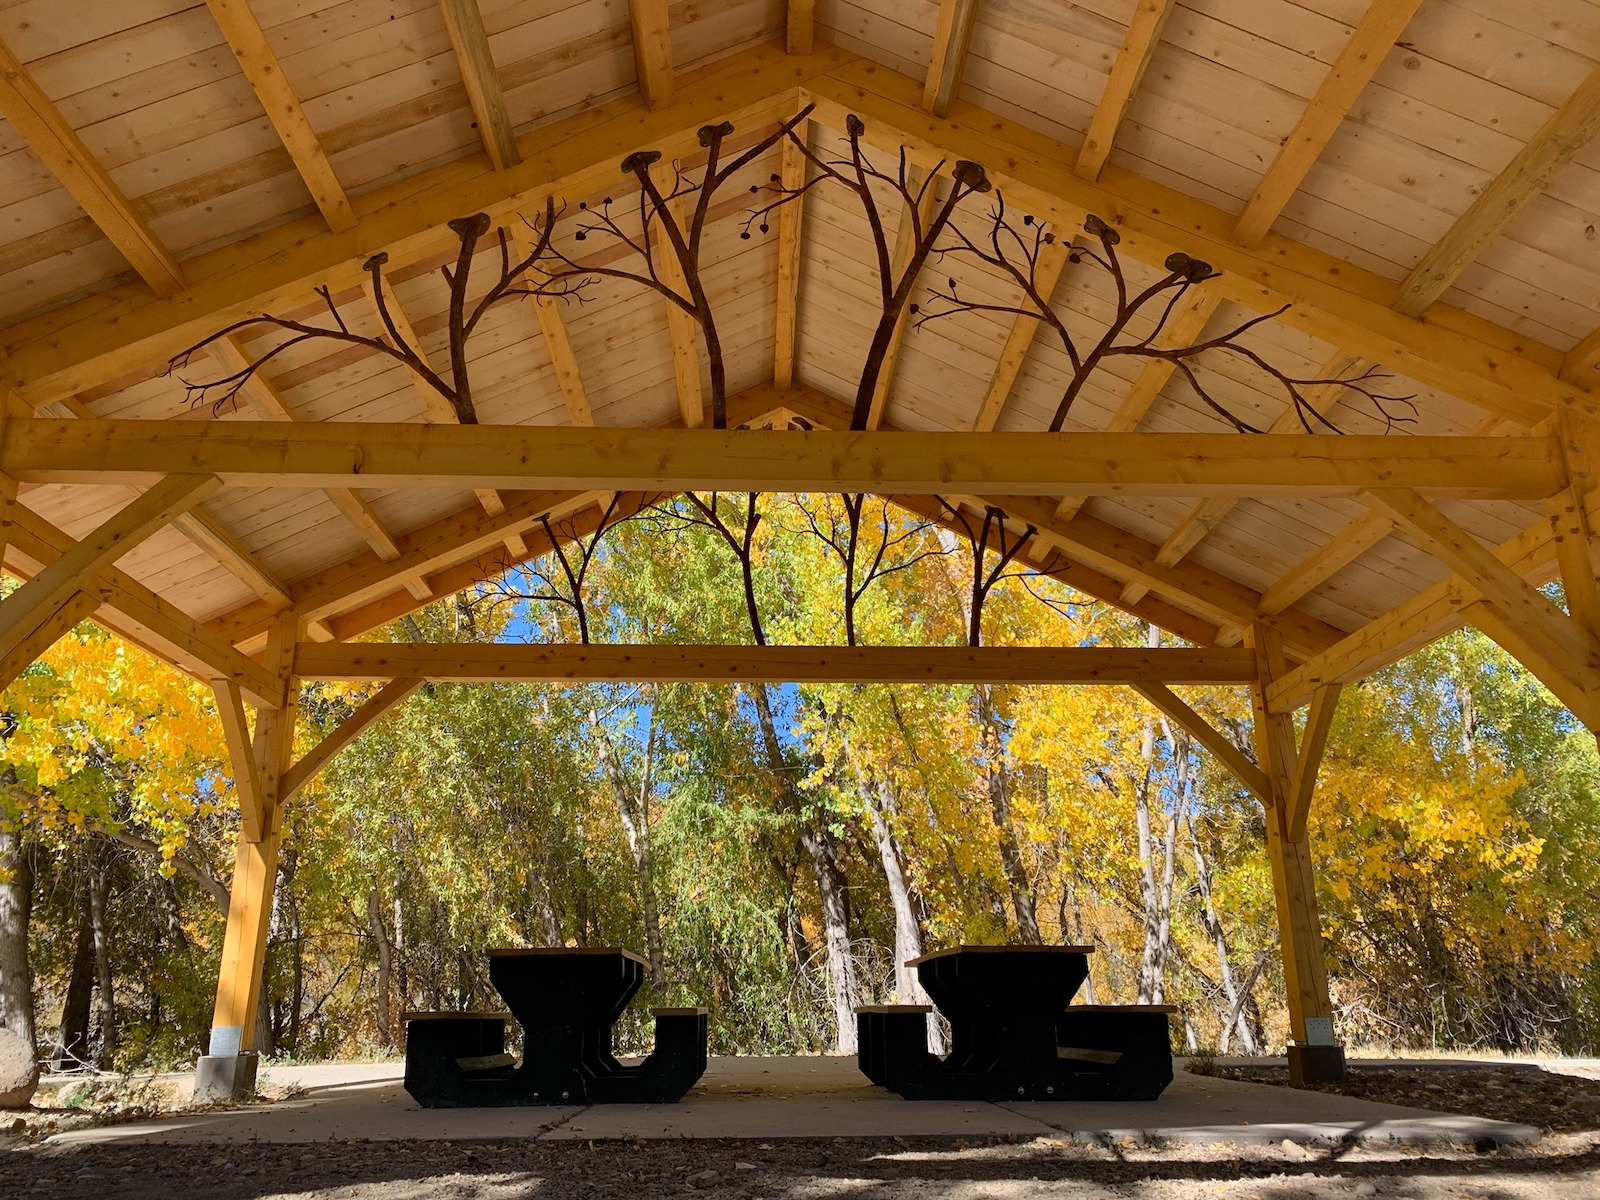 Image of a shelter in the Paonia River Park in Colorado